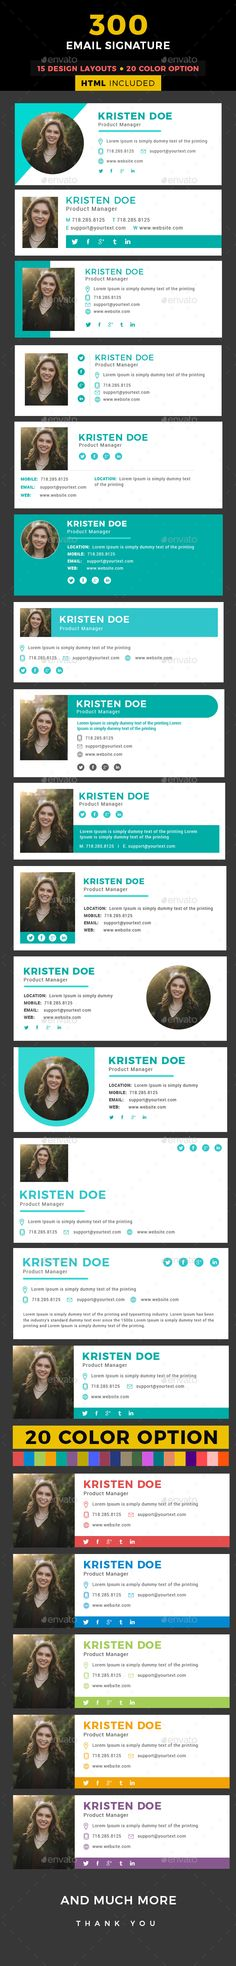 Email Signature: 300 Email Signature, Modern & Professional Email Signatures for your Business and Personal use. Easy to customize Professional Email Signature, Business Professional, Envato Market, Email Signature Templates, Email Signatures, Business Emails, Information Graphics, Signature Design, Text Color